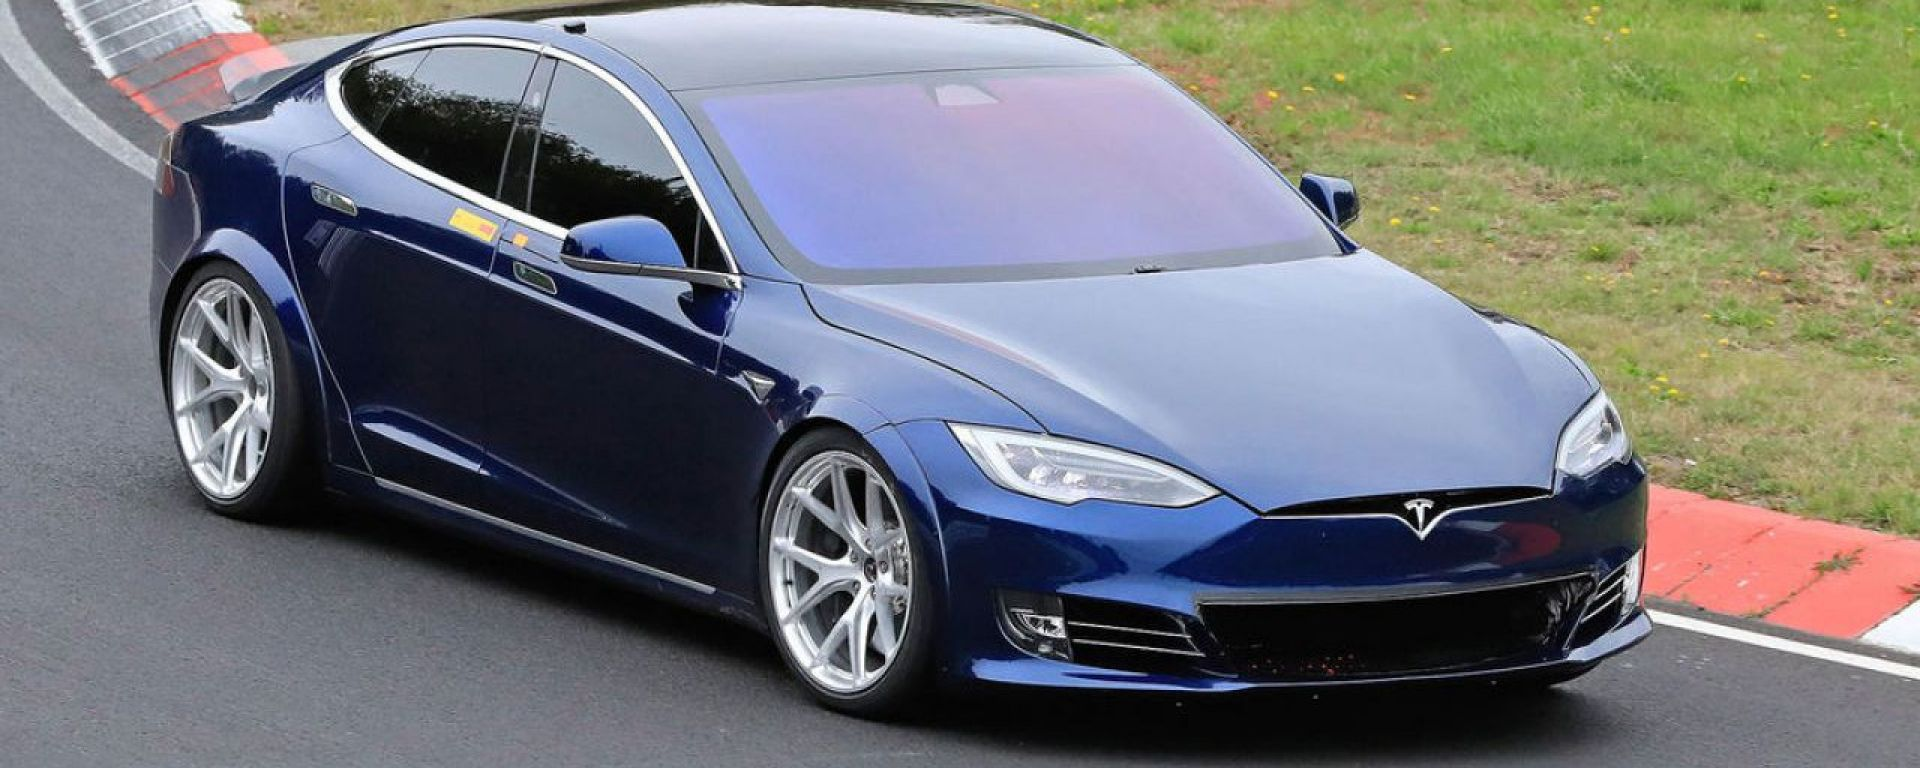 Tesla Model S in azione al Nurburgring